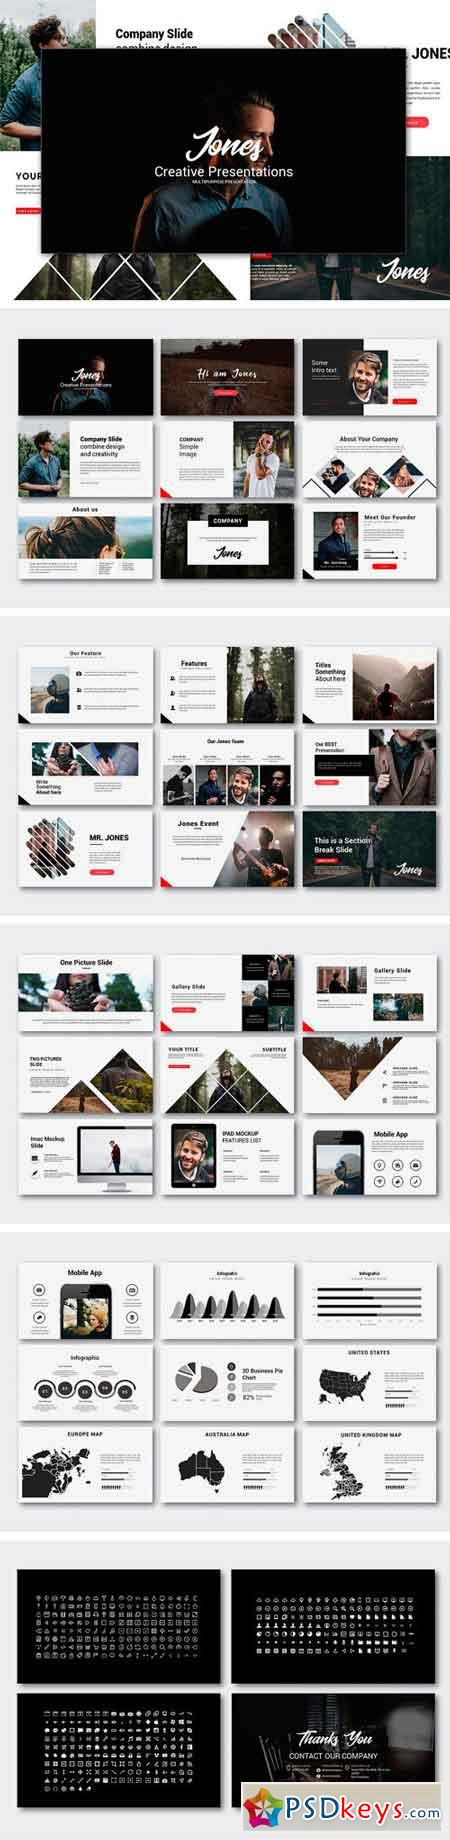 jones creative powerpoint template 1953689 » free download, Modern powerpoint